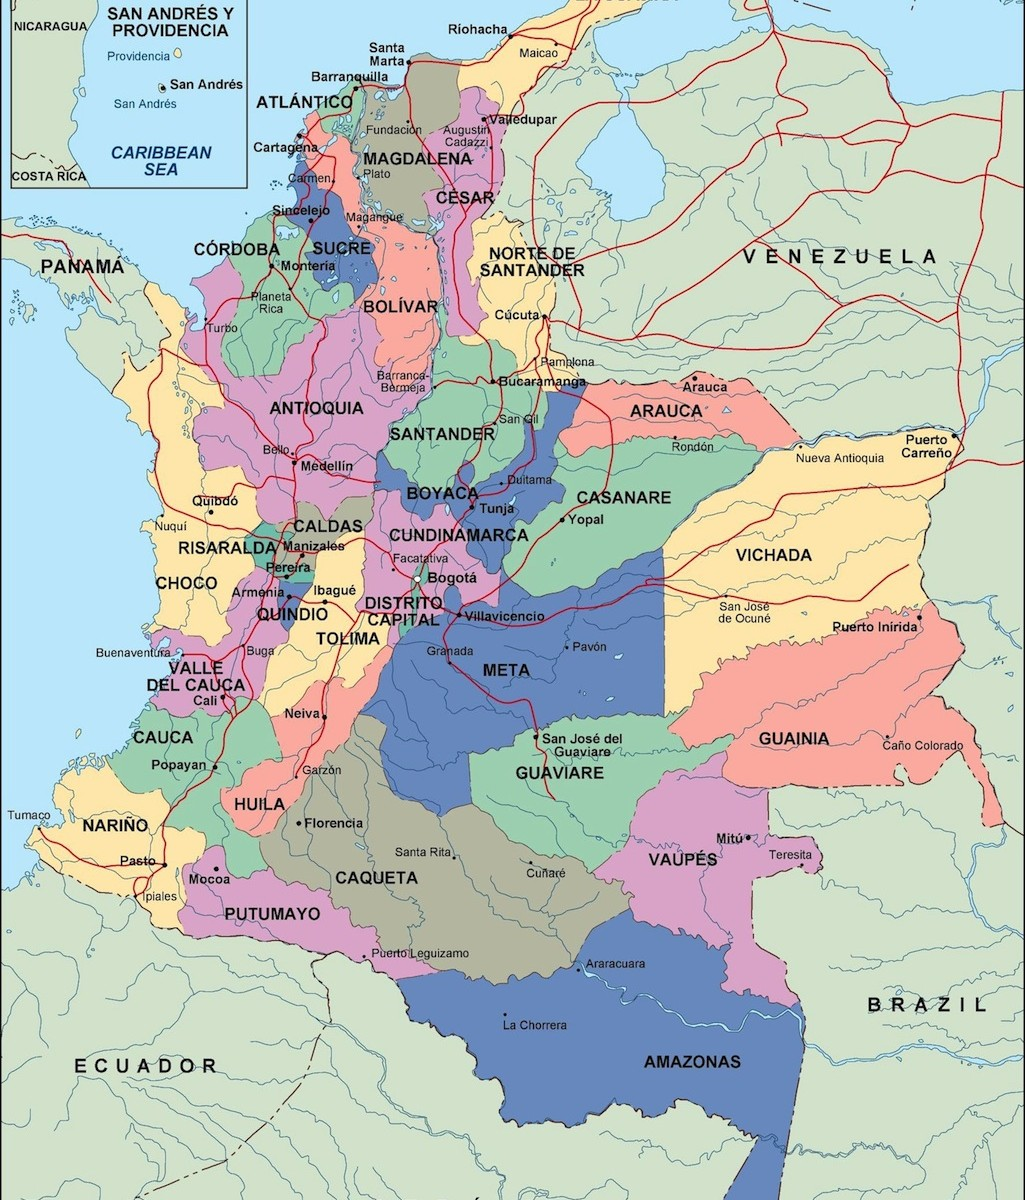 colombia political map | Order and download colombia political map